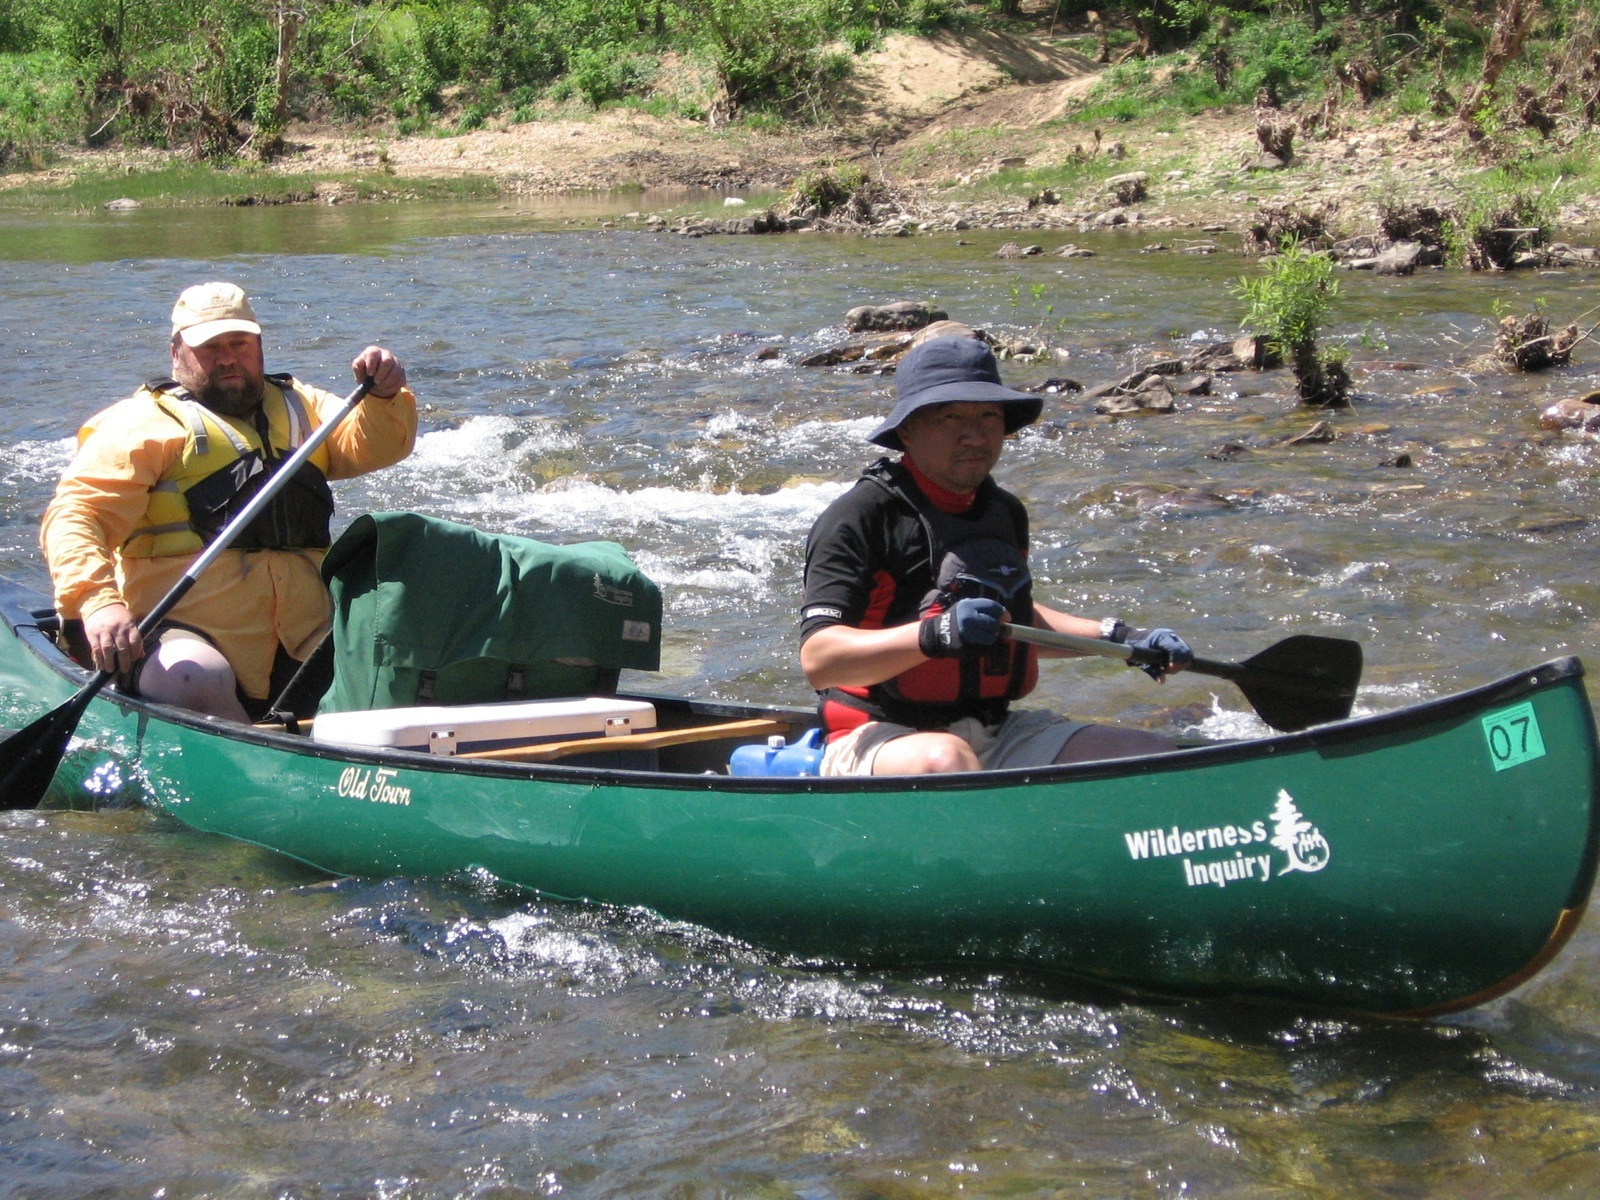 Two participants in a green tandem Wilderness Inquiry canoe maneuver a small section of whitewater in the Ozarks.